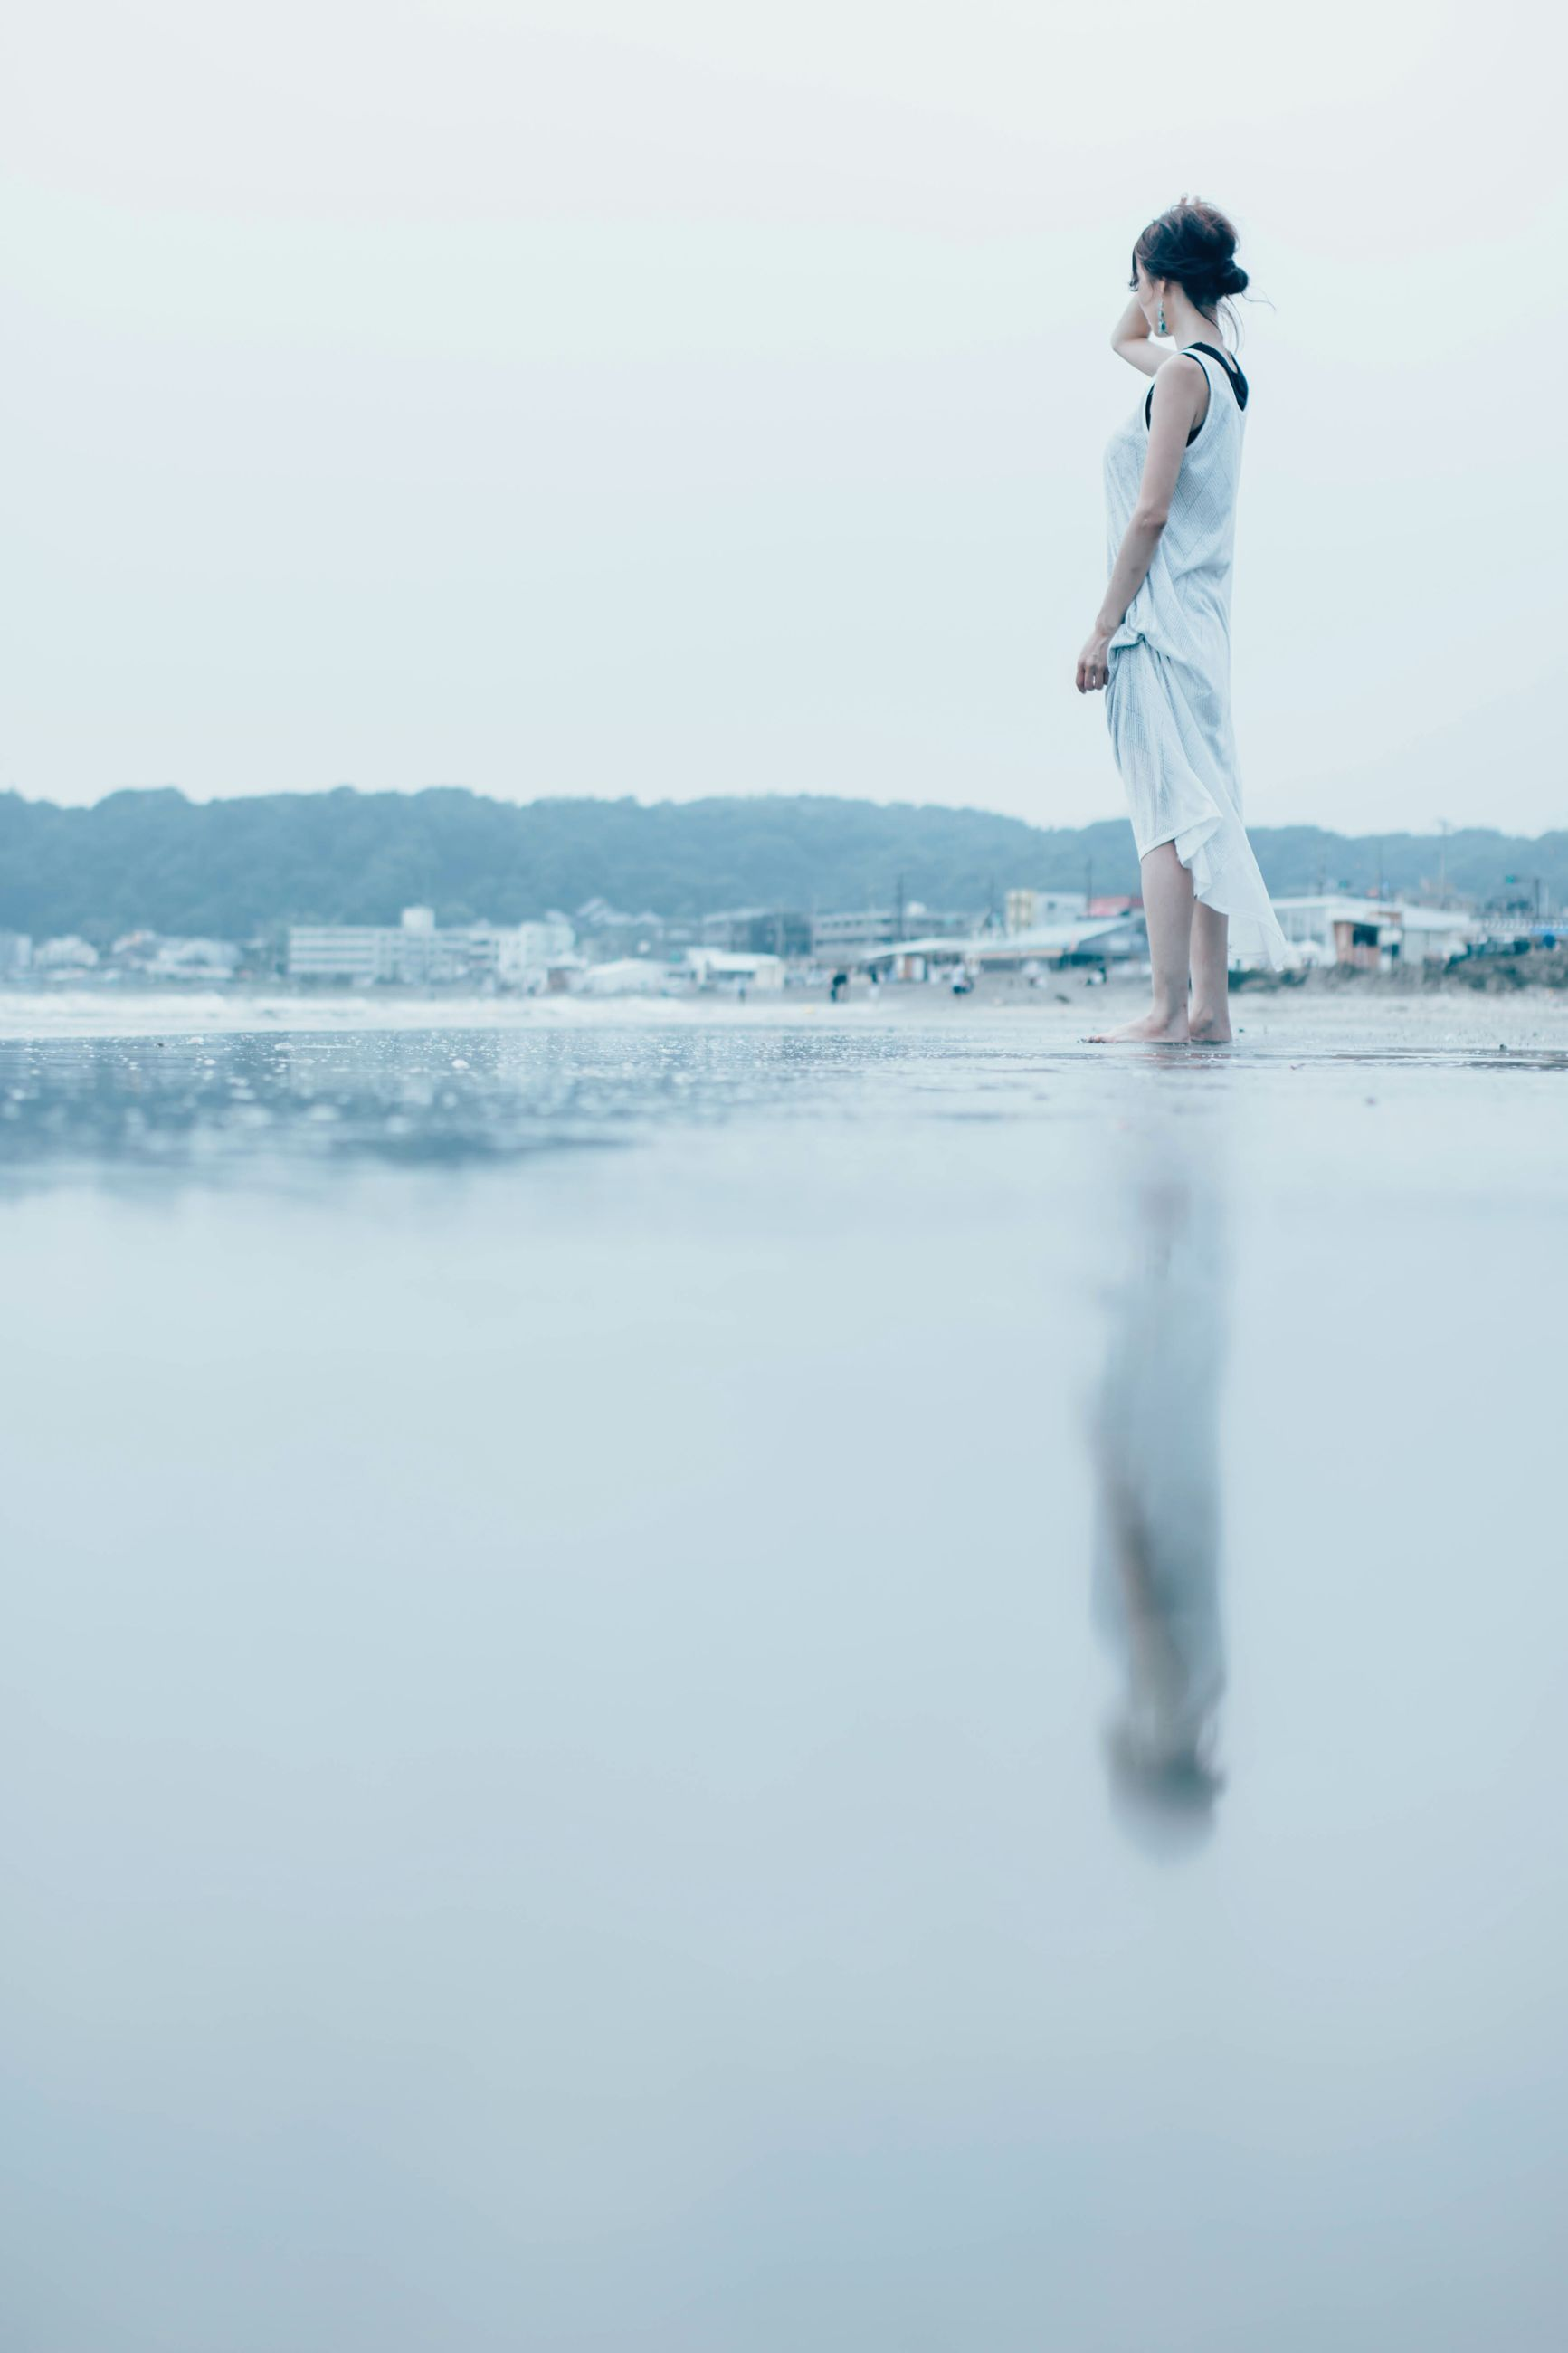 one person, full length, real people, reflection, water, standing, outdoors, young adult, sea, beach, young women, lifestyles, day, beautiful woman, women, nature, beauty in nature, clear sky, sky, people